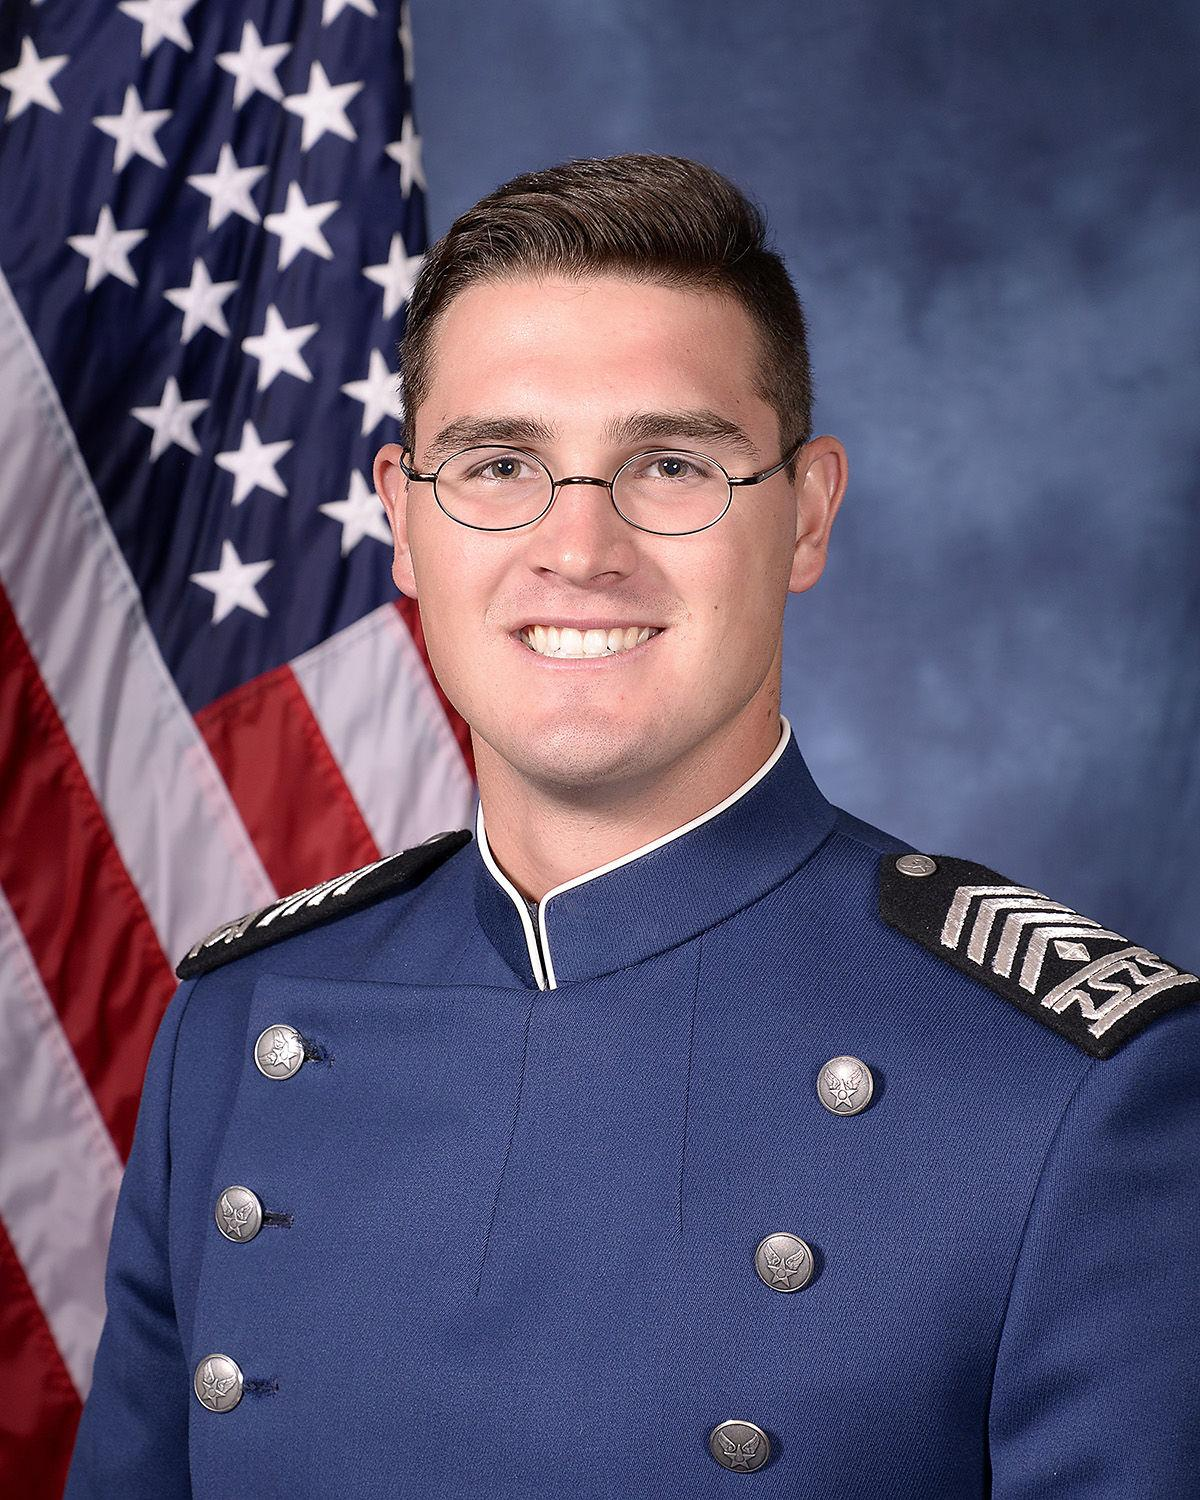 Nic Ready from Air Force Academy hits derby record 55 home runs